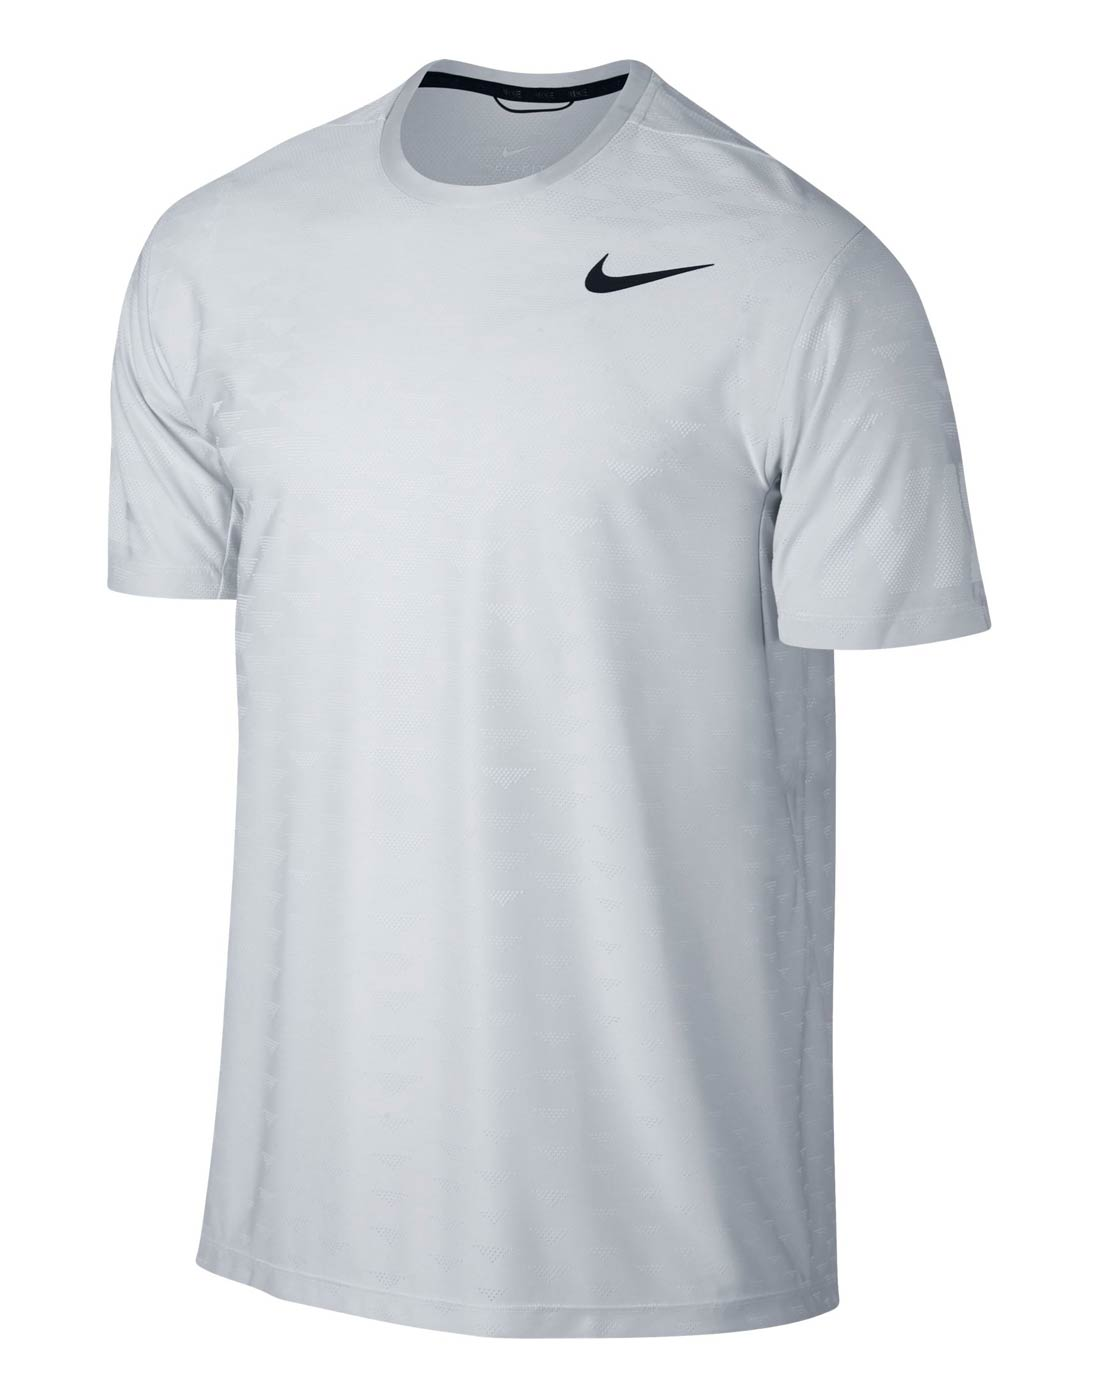 Men's Clothing Nike Zonal Cooling Top And To Have A Long Life. Clothes, Shoes & Accessories